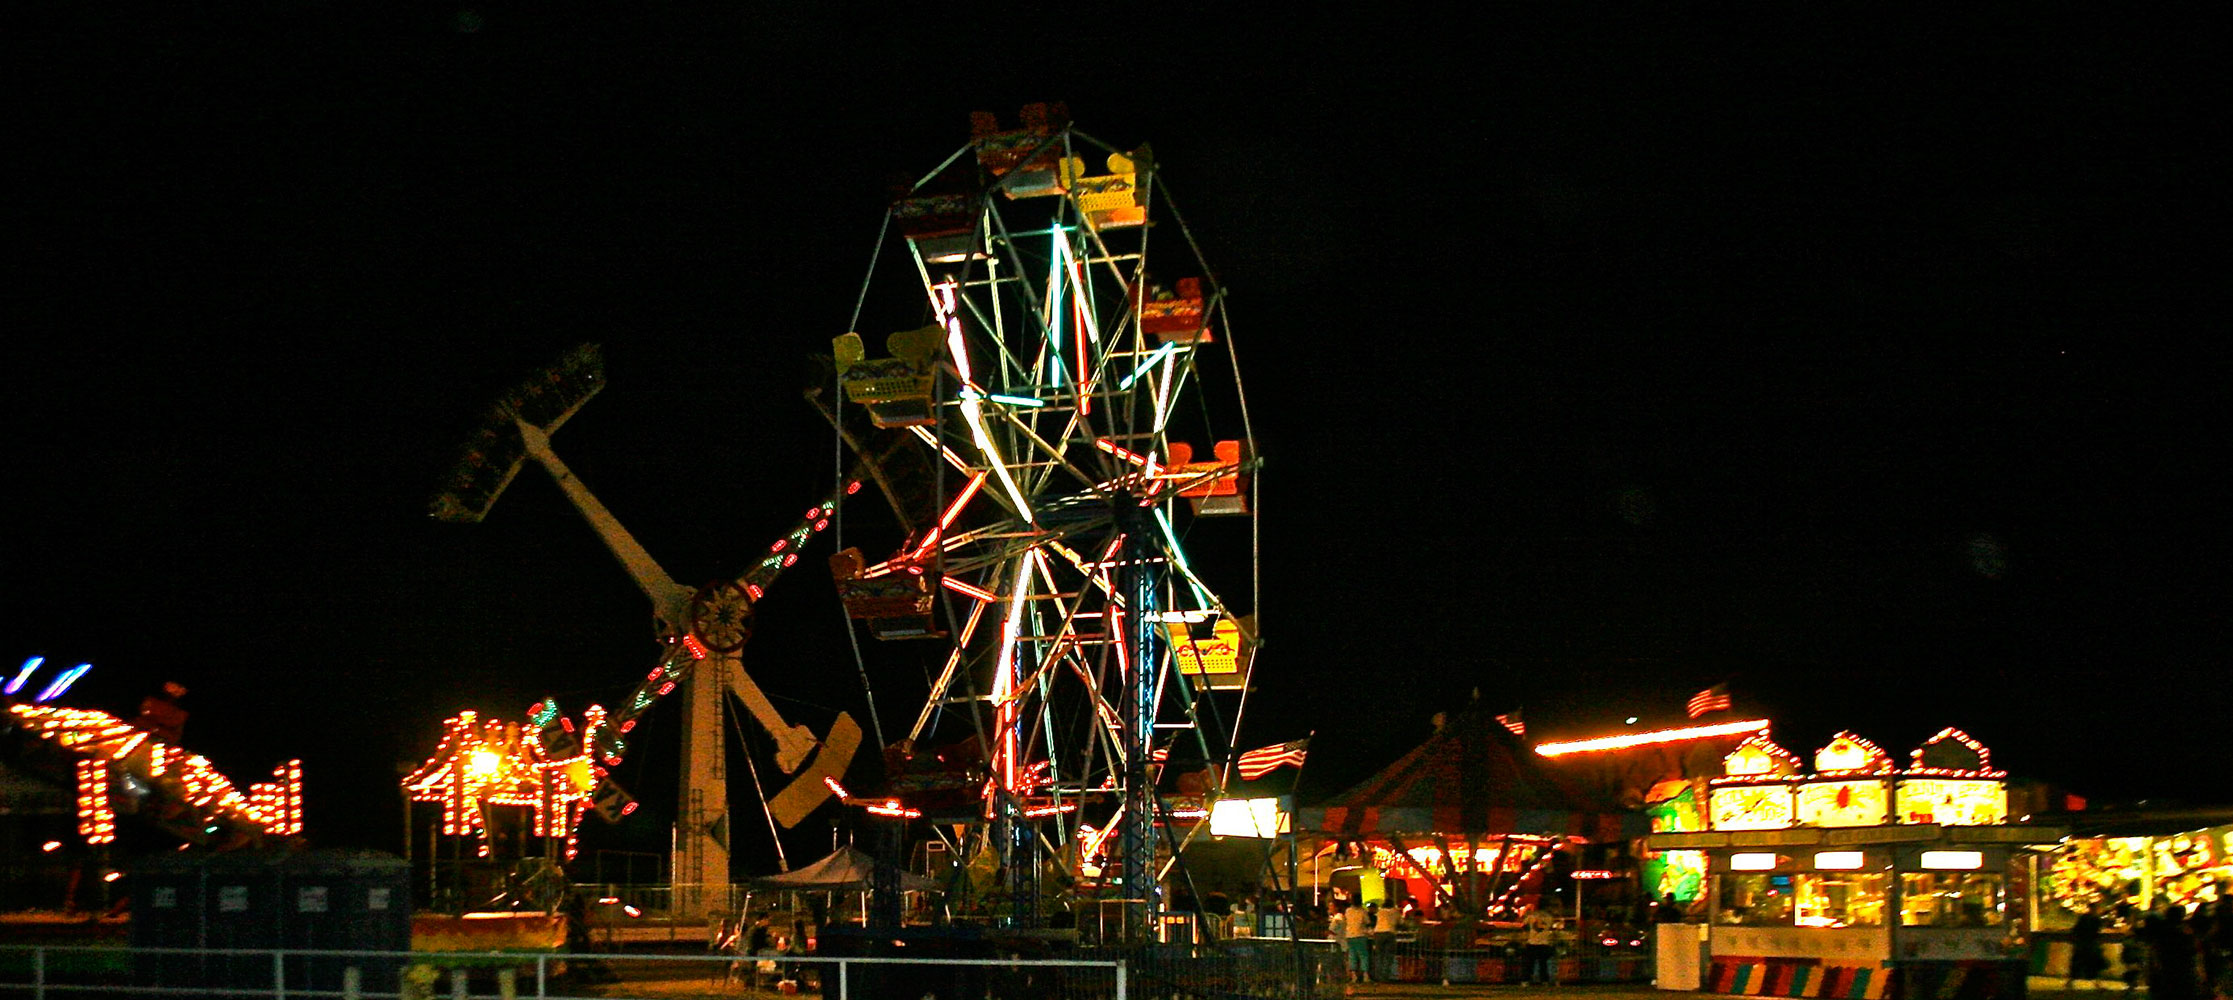 night time carnival